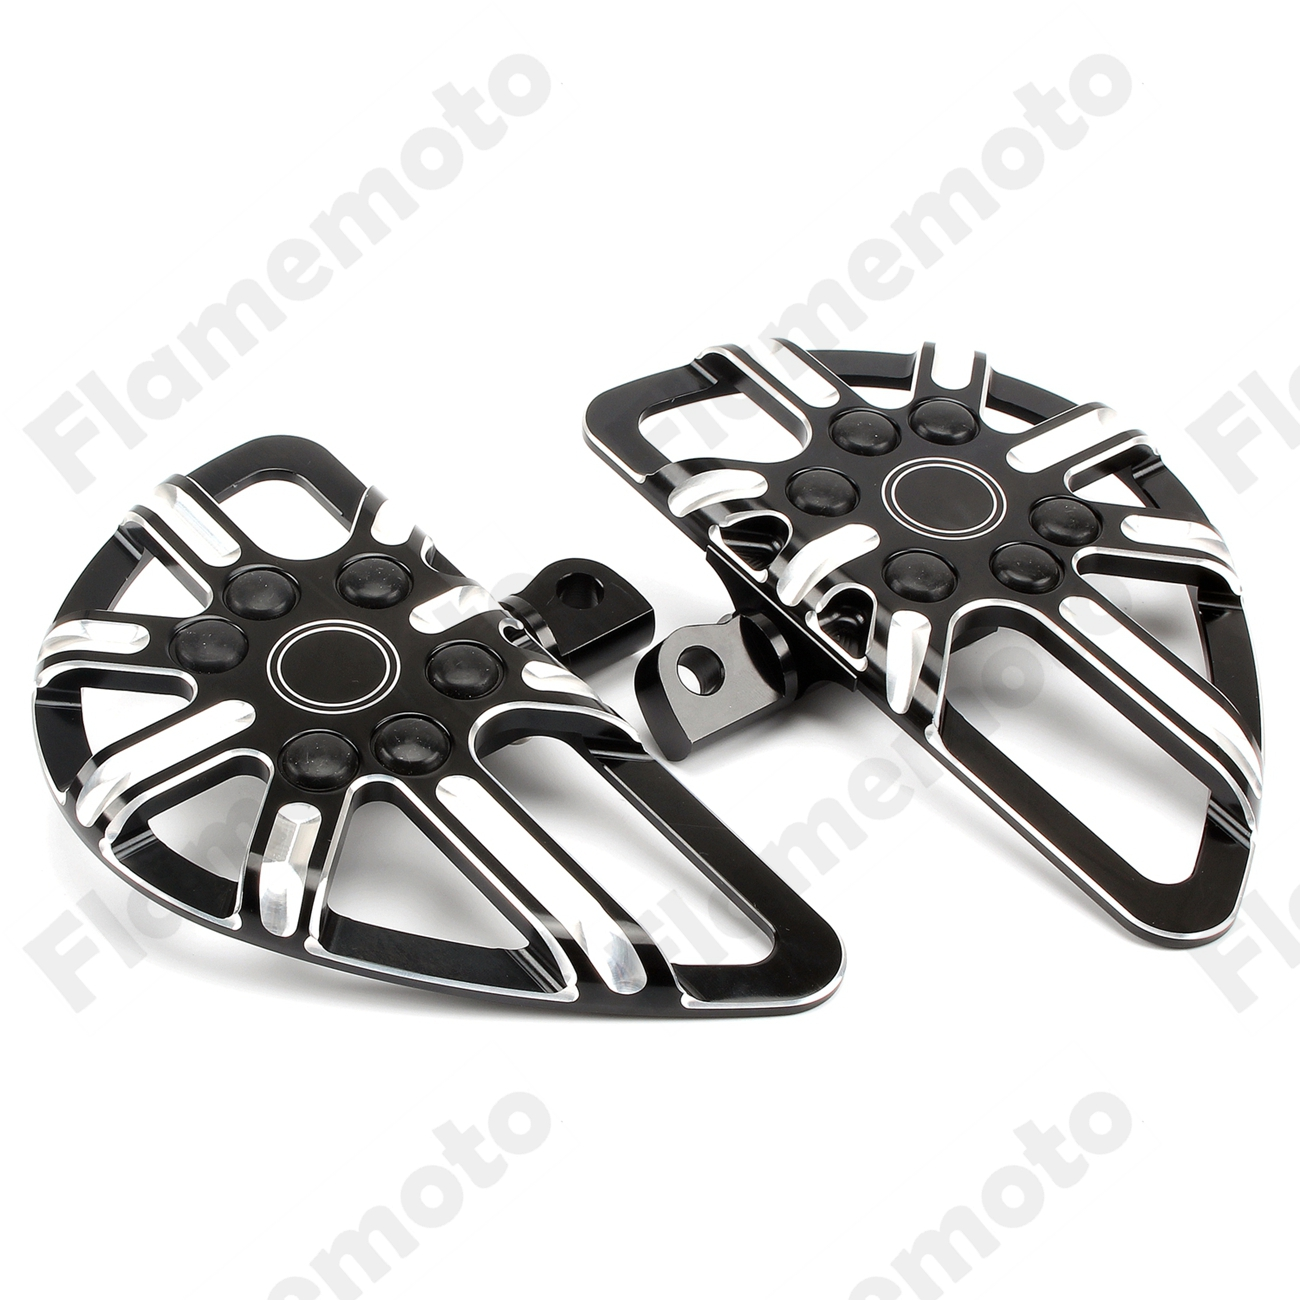 Black Motorcycle Foot Pegs Male Mount Footrest Floorboard Pedal For Harley Touring Electra Glide Dyna Fatboy Softail Sportster